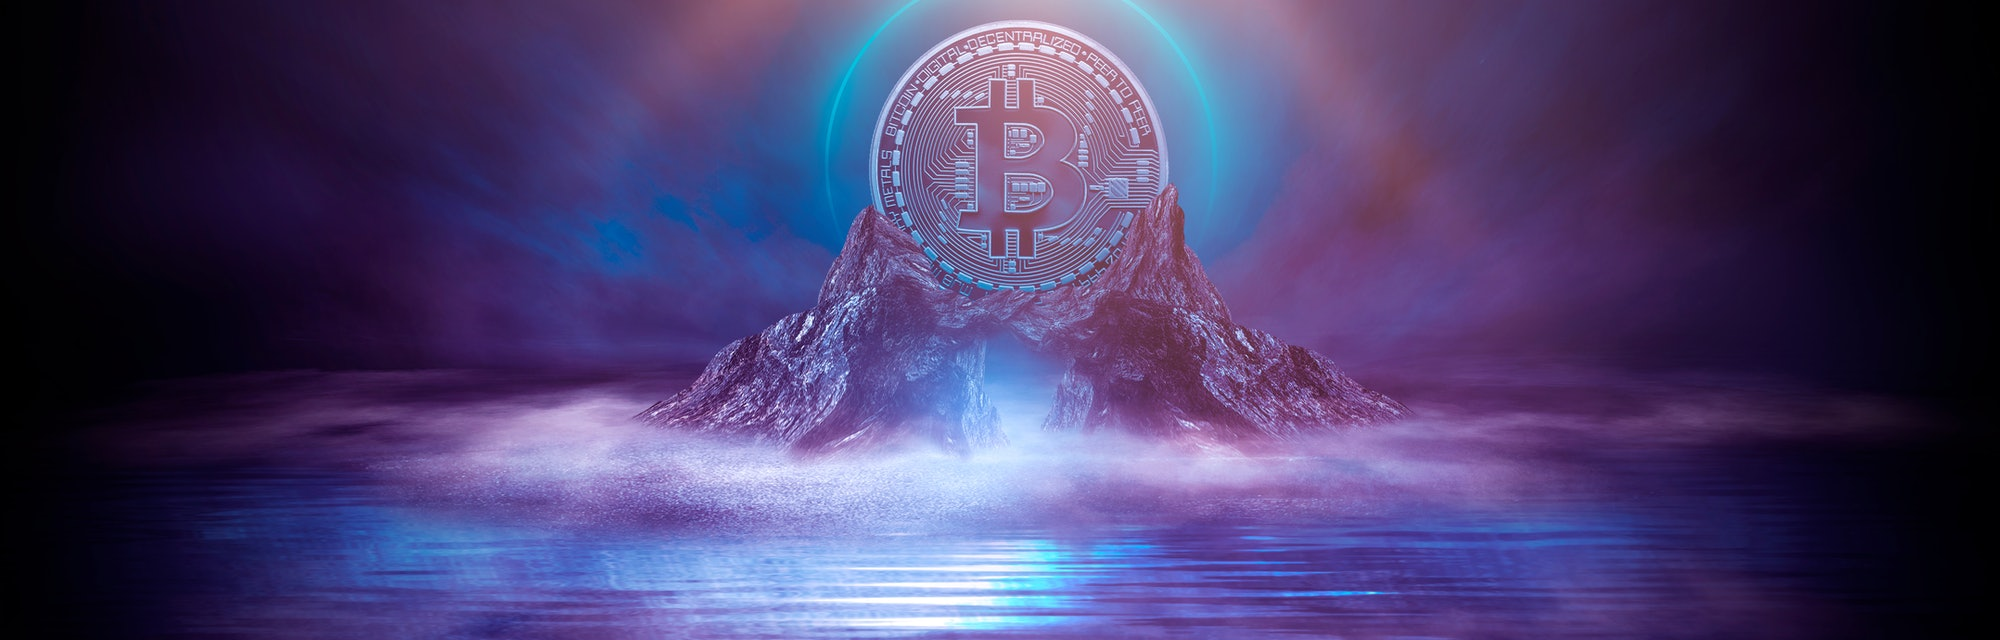 Dark, night abstract fantasy landscape with island, pyramids, bitcoin and lightning. Reflection of neon in water, sea, ocean. Smoke, smog on the shore. A modern futuristic landscape with bitcoin. 3d